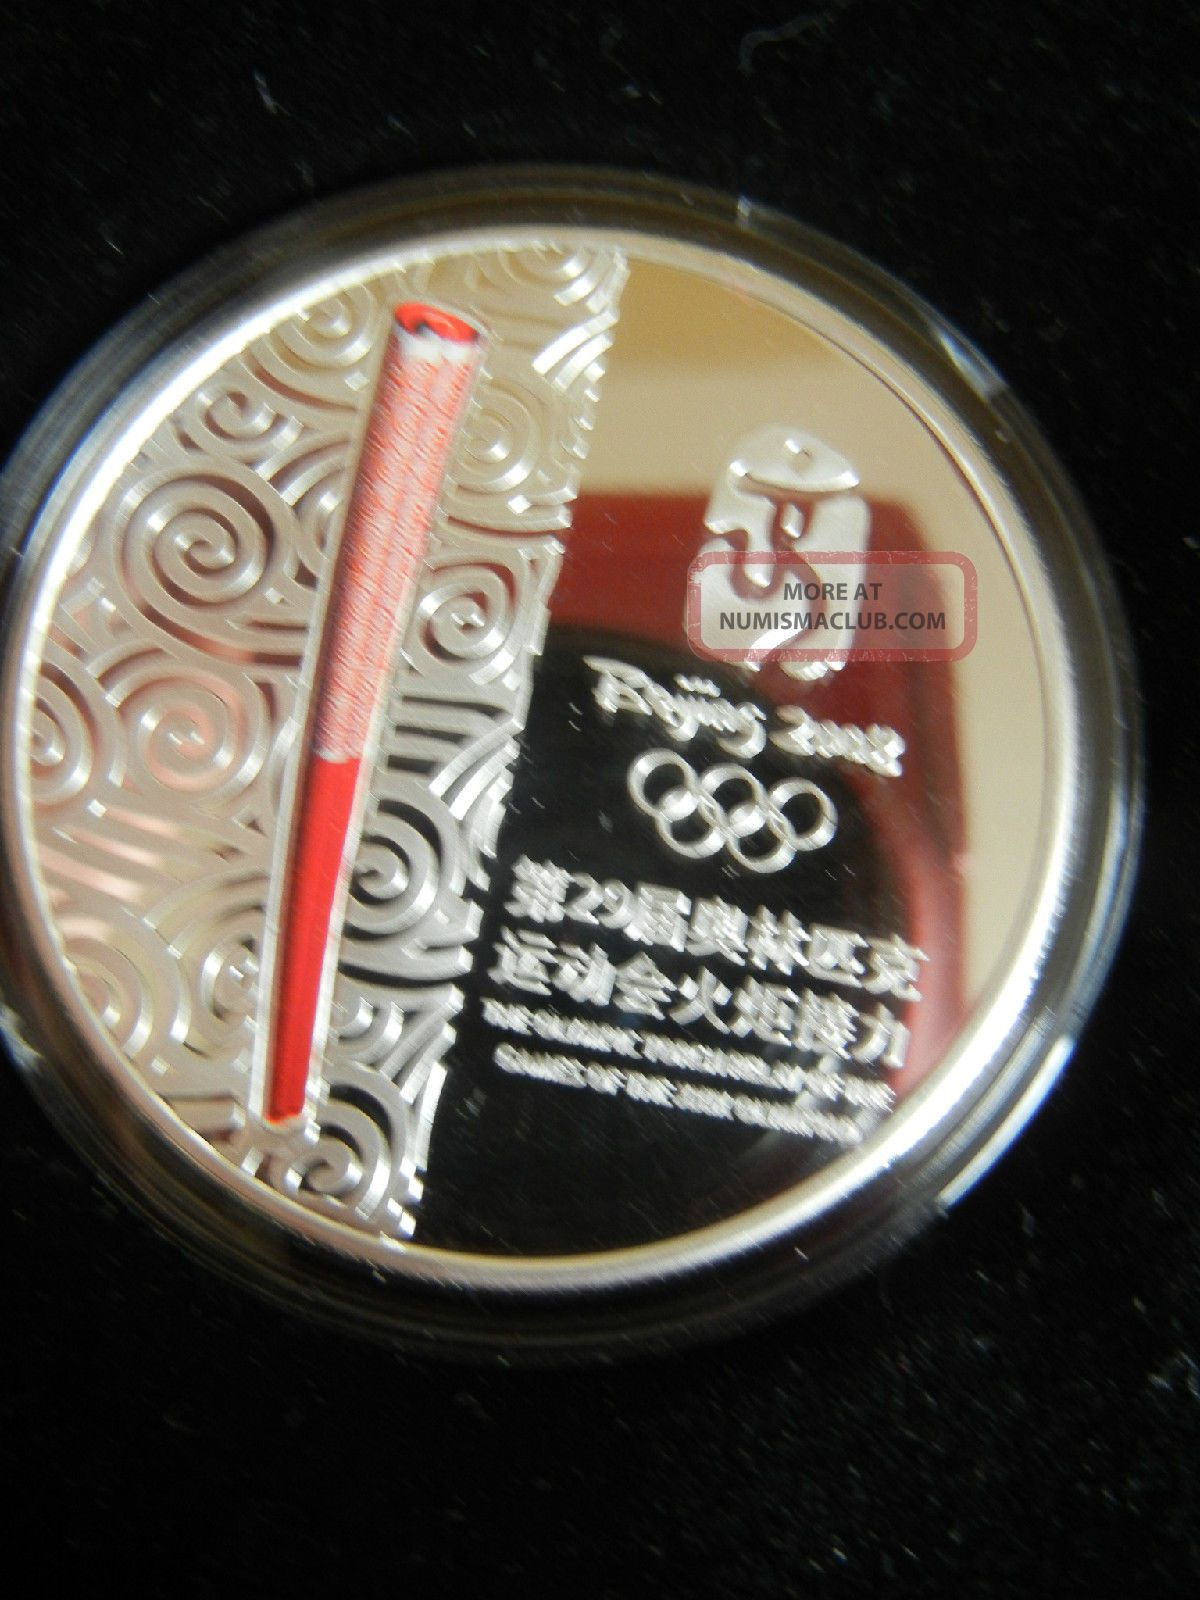 Mint Commemorative Medallion Of Torch Relay Beijing 2008 Olympic Games Olympic Memorabilia